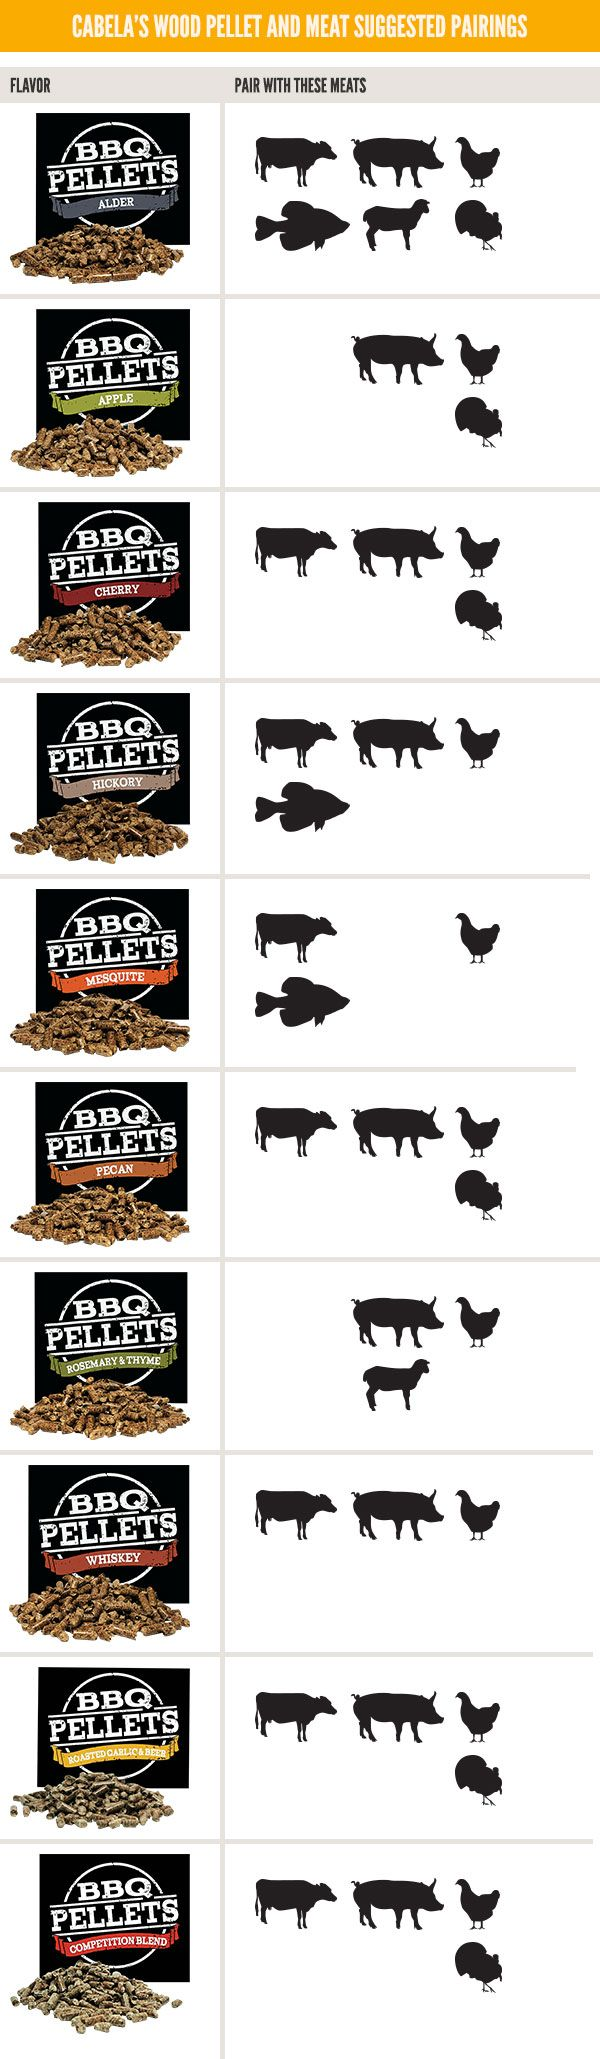 Find the perfect pairing of wood pellet and meat.